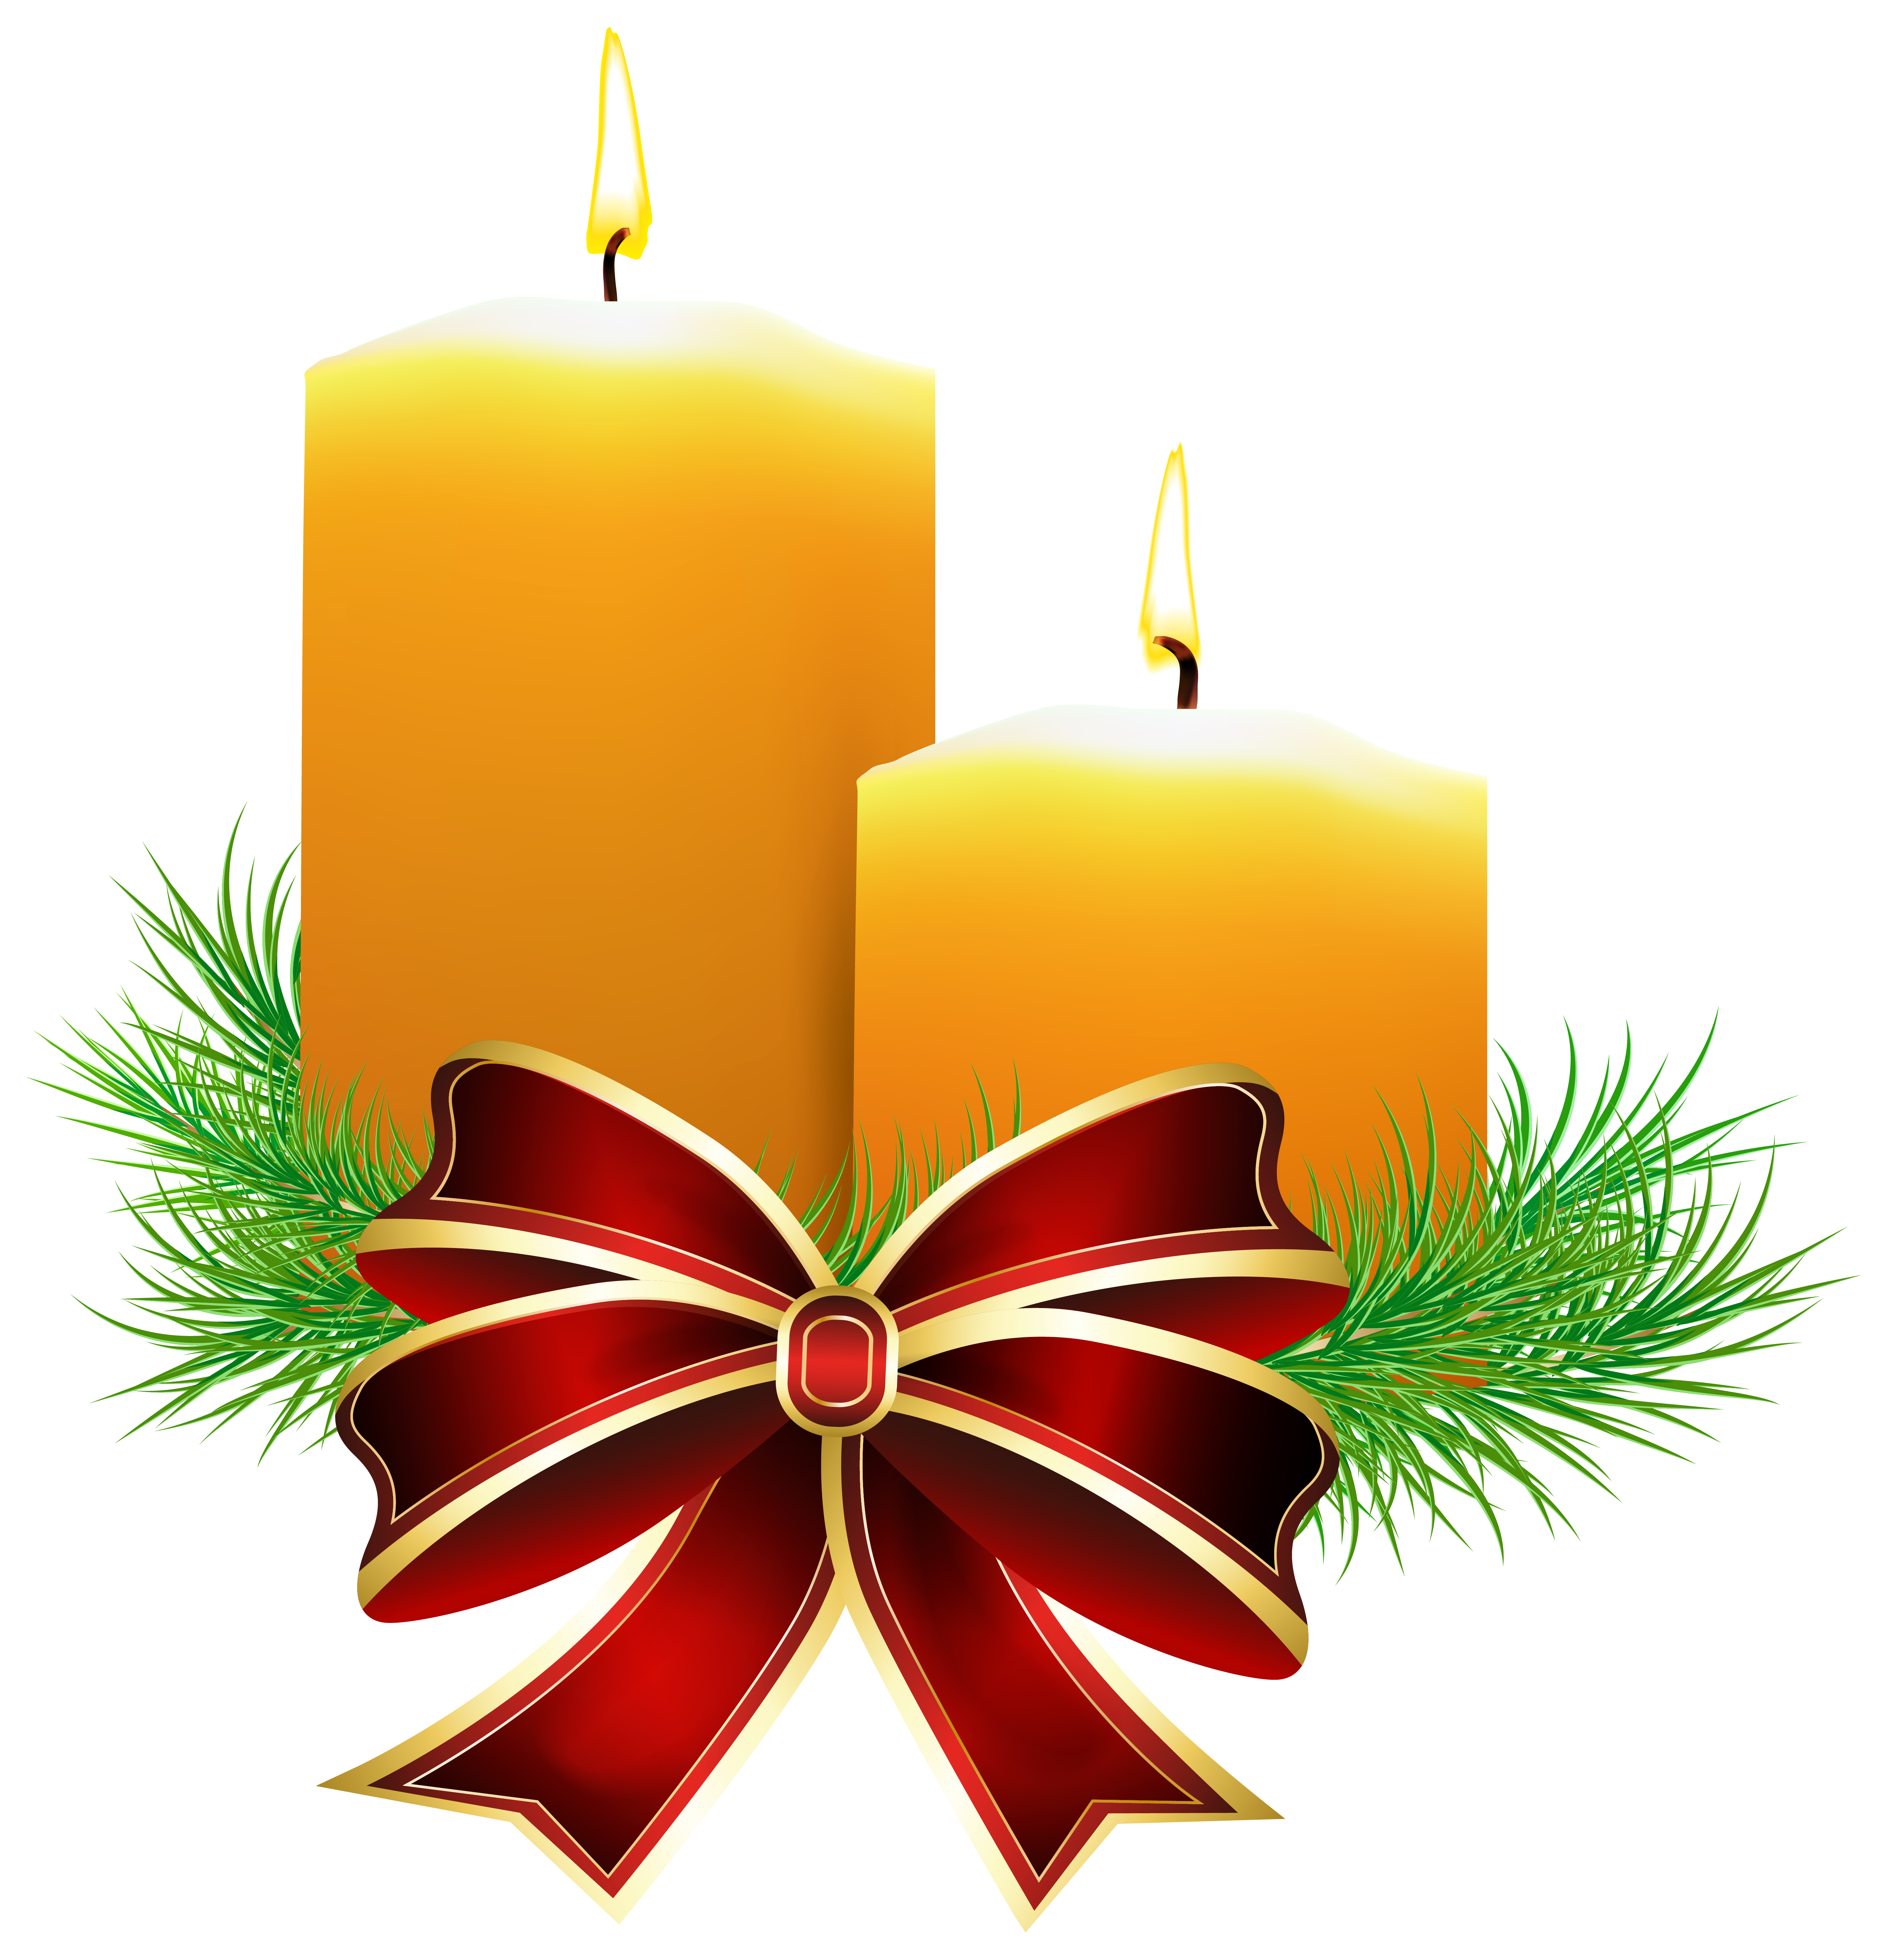 Christmas candle clipart black and white png library library Christmas Candles Transparent PNG Clip Art Image | Gallery ... png library library